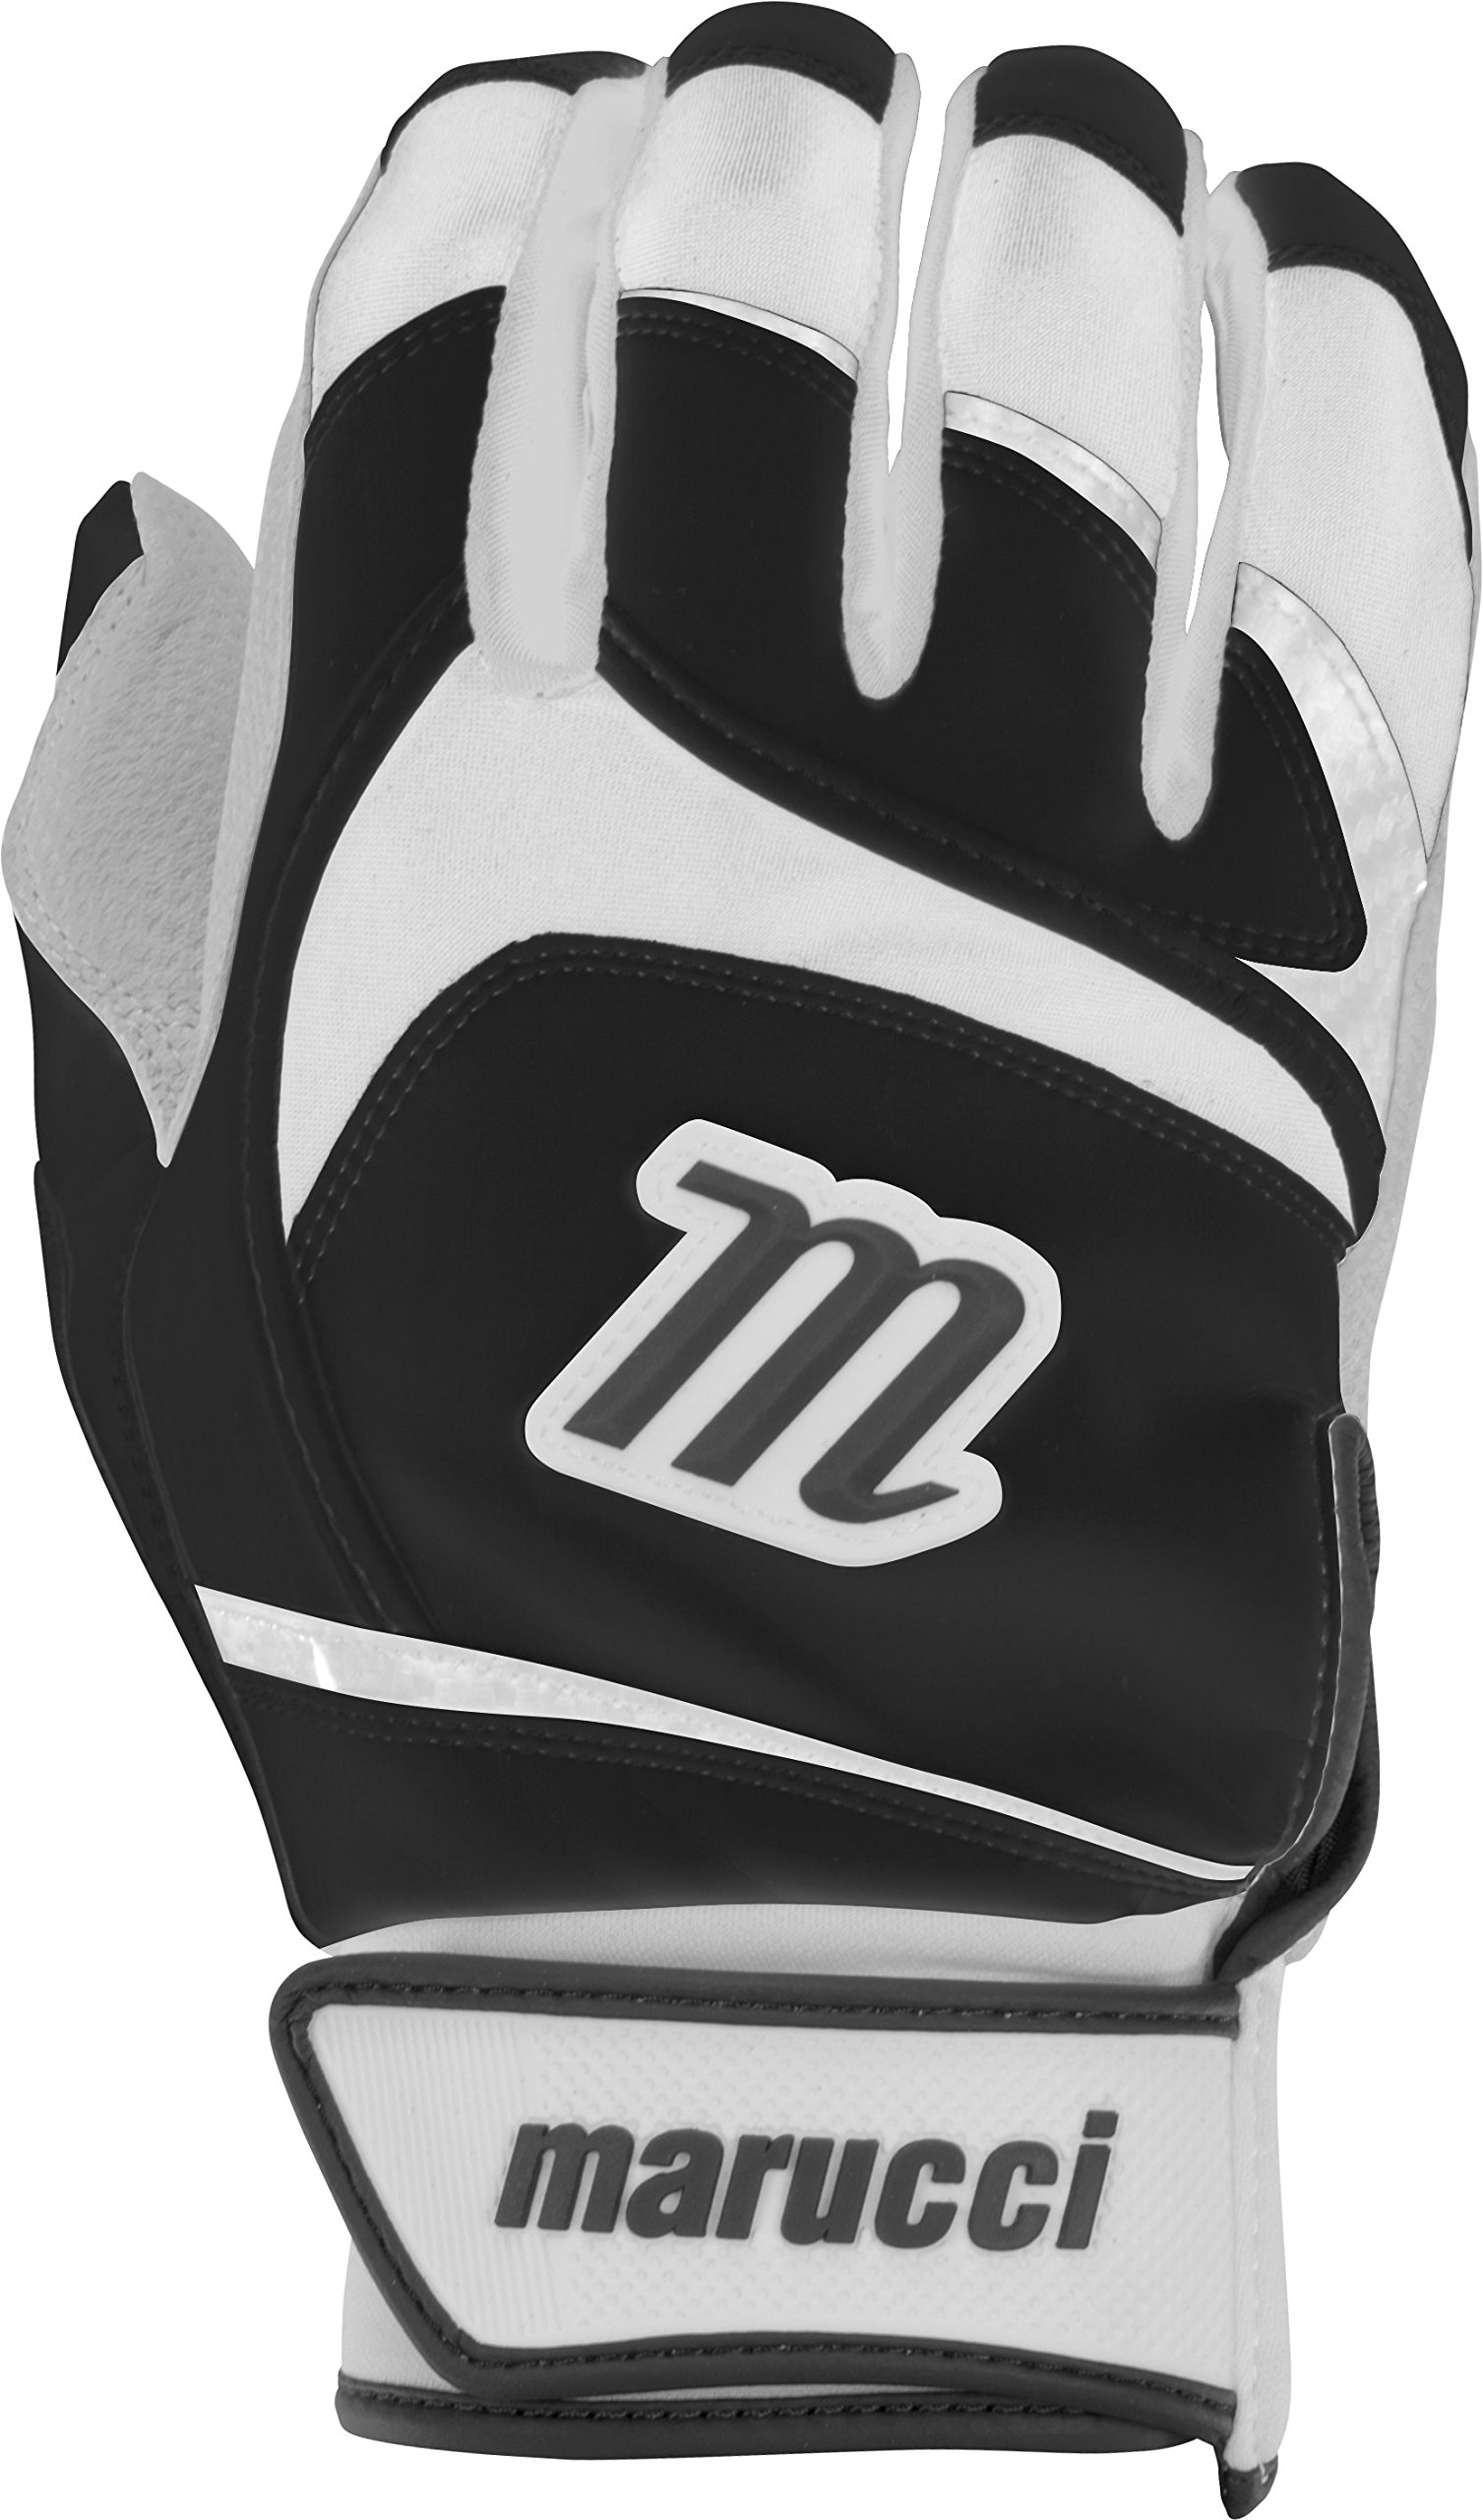 Marucci Youth Signature Baseball Batting Gloves, Black, Medium